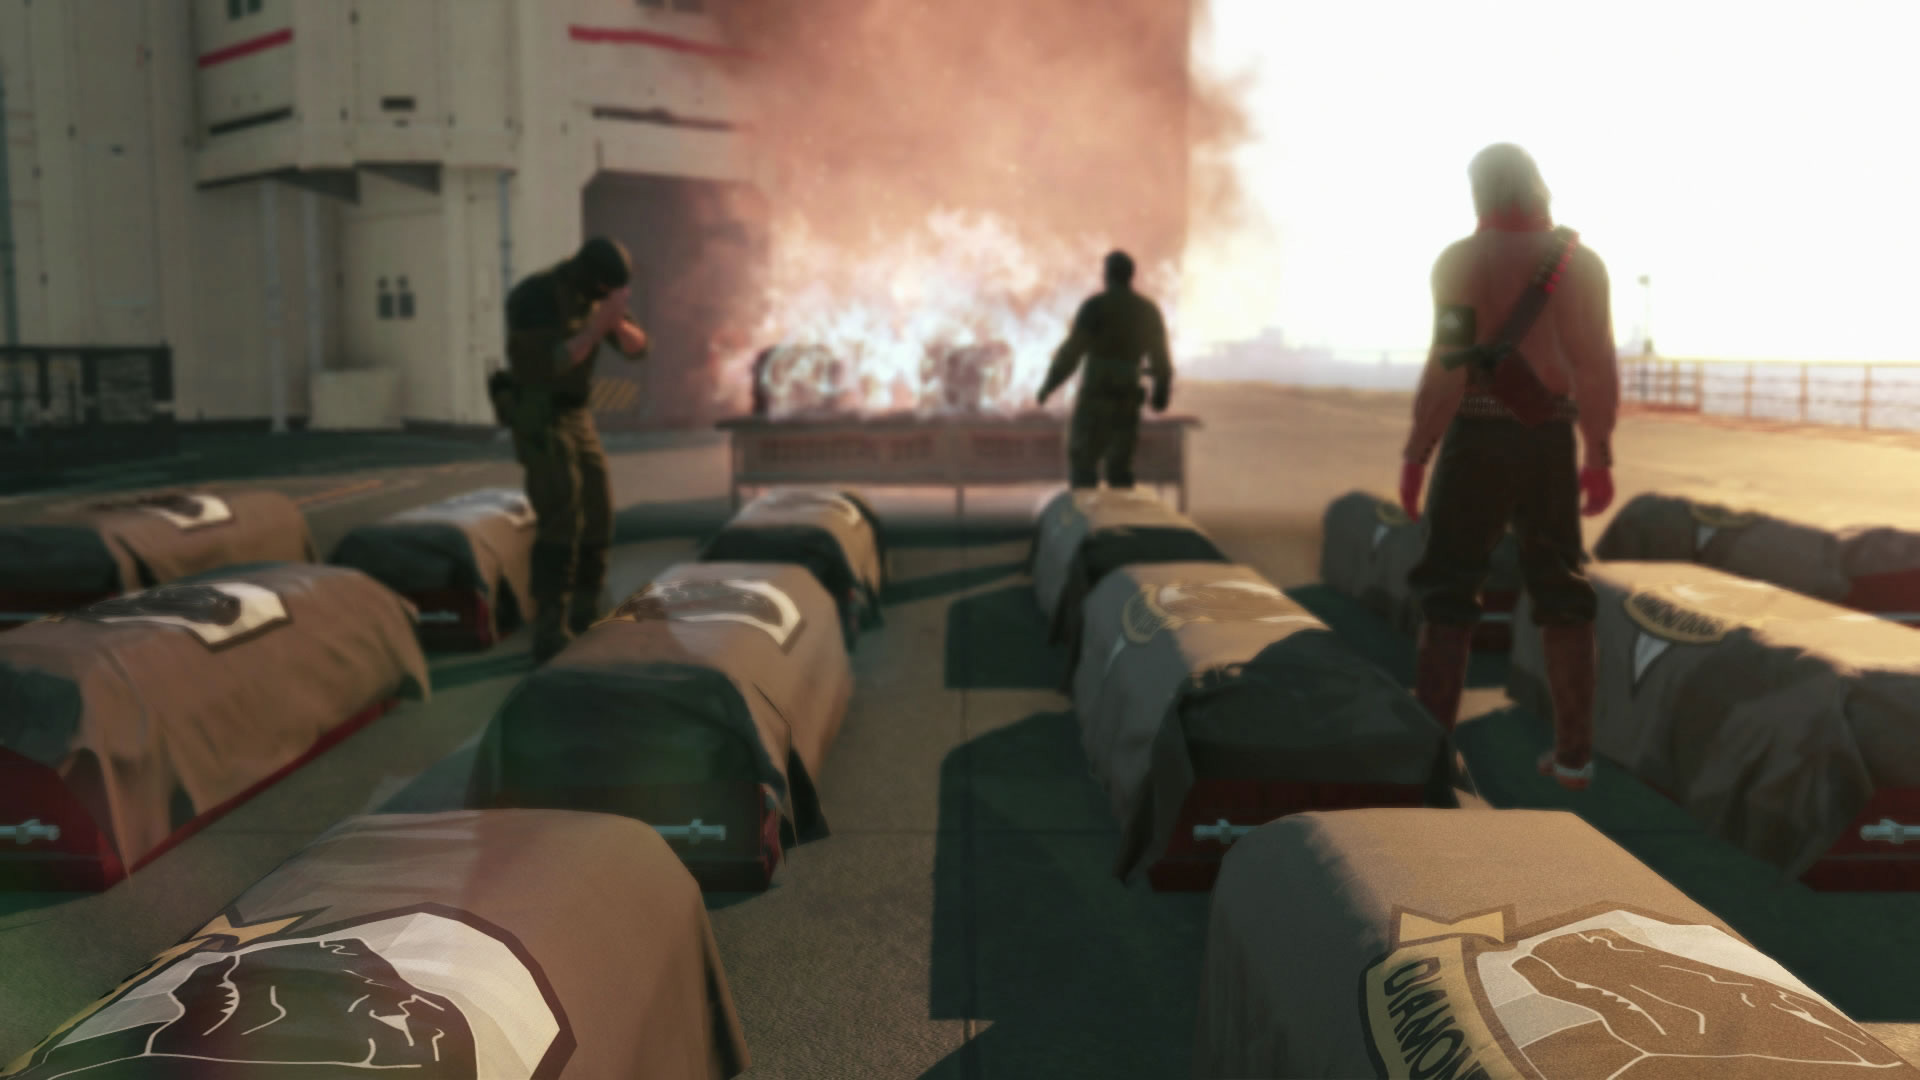 Metal-Gear-Solid-V-The-Phantom-Pain-E3-2015-Screen-Mother-Base-Coffins